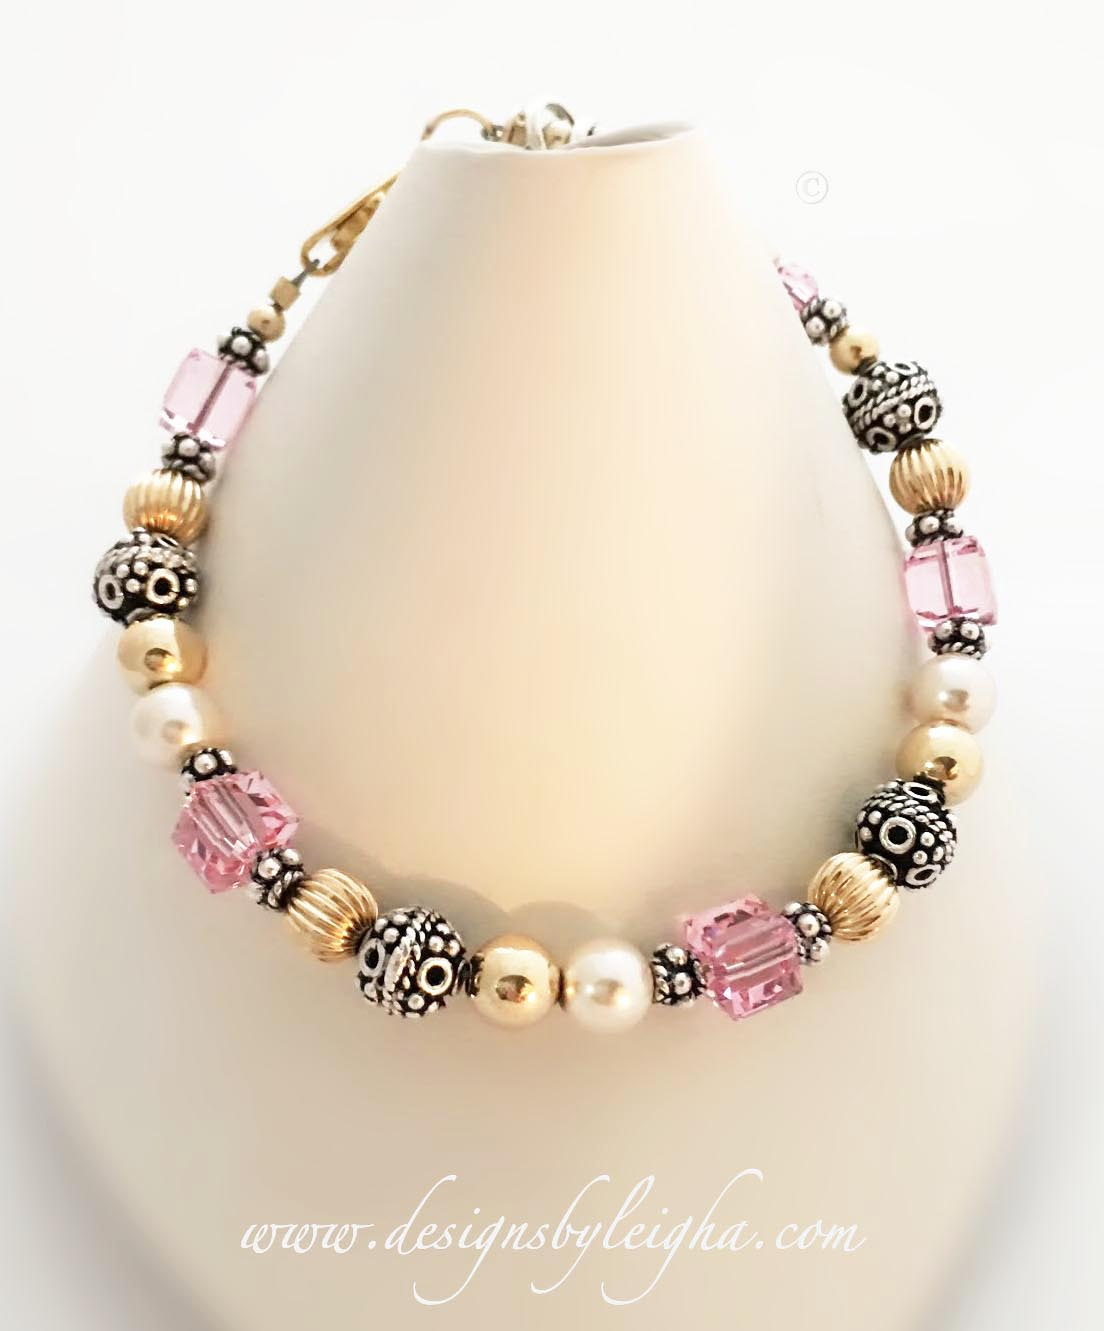 DBL-MB-R26  Breast Cancer Ribbon Bracelet. You choose the color(s).